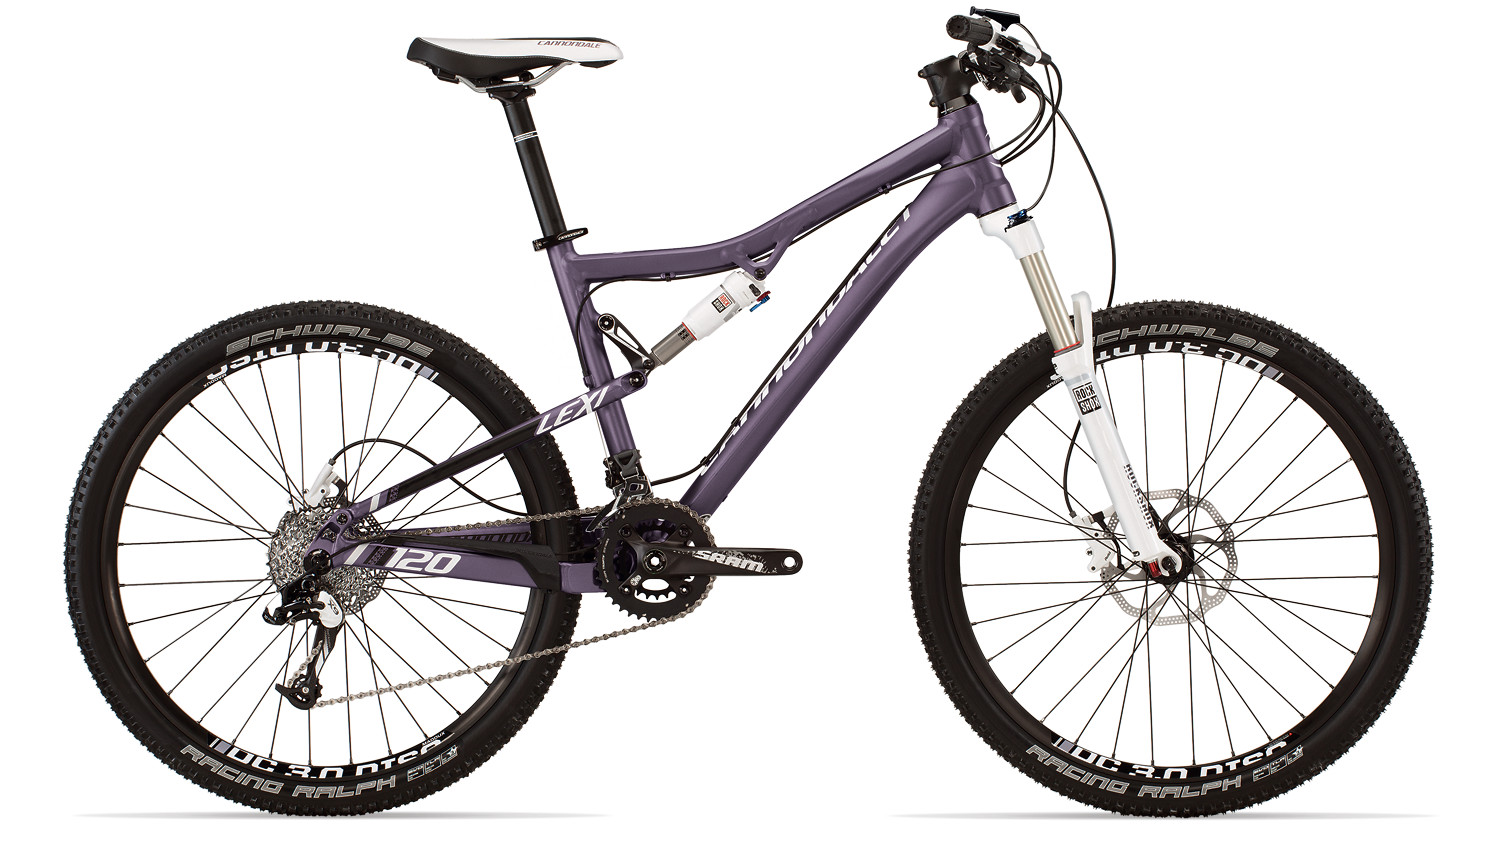 bike - 2014 Cannondale Lexi 2